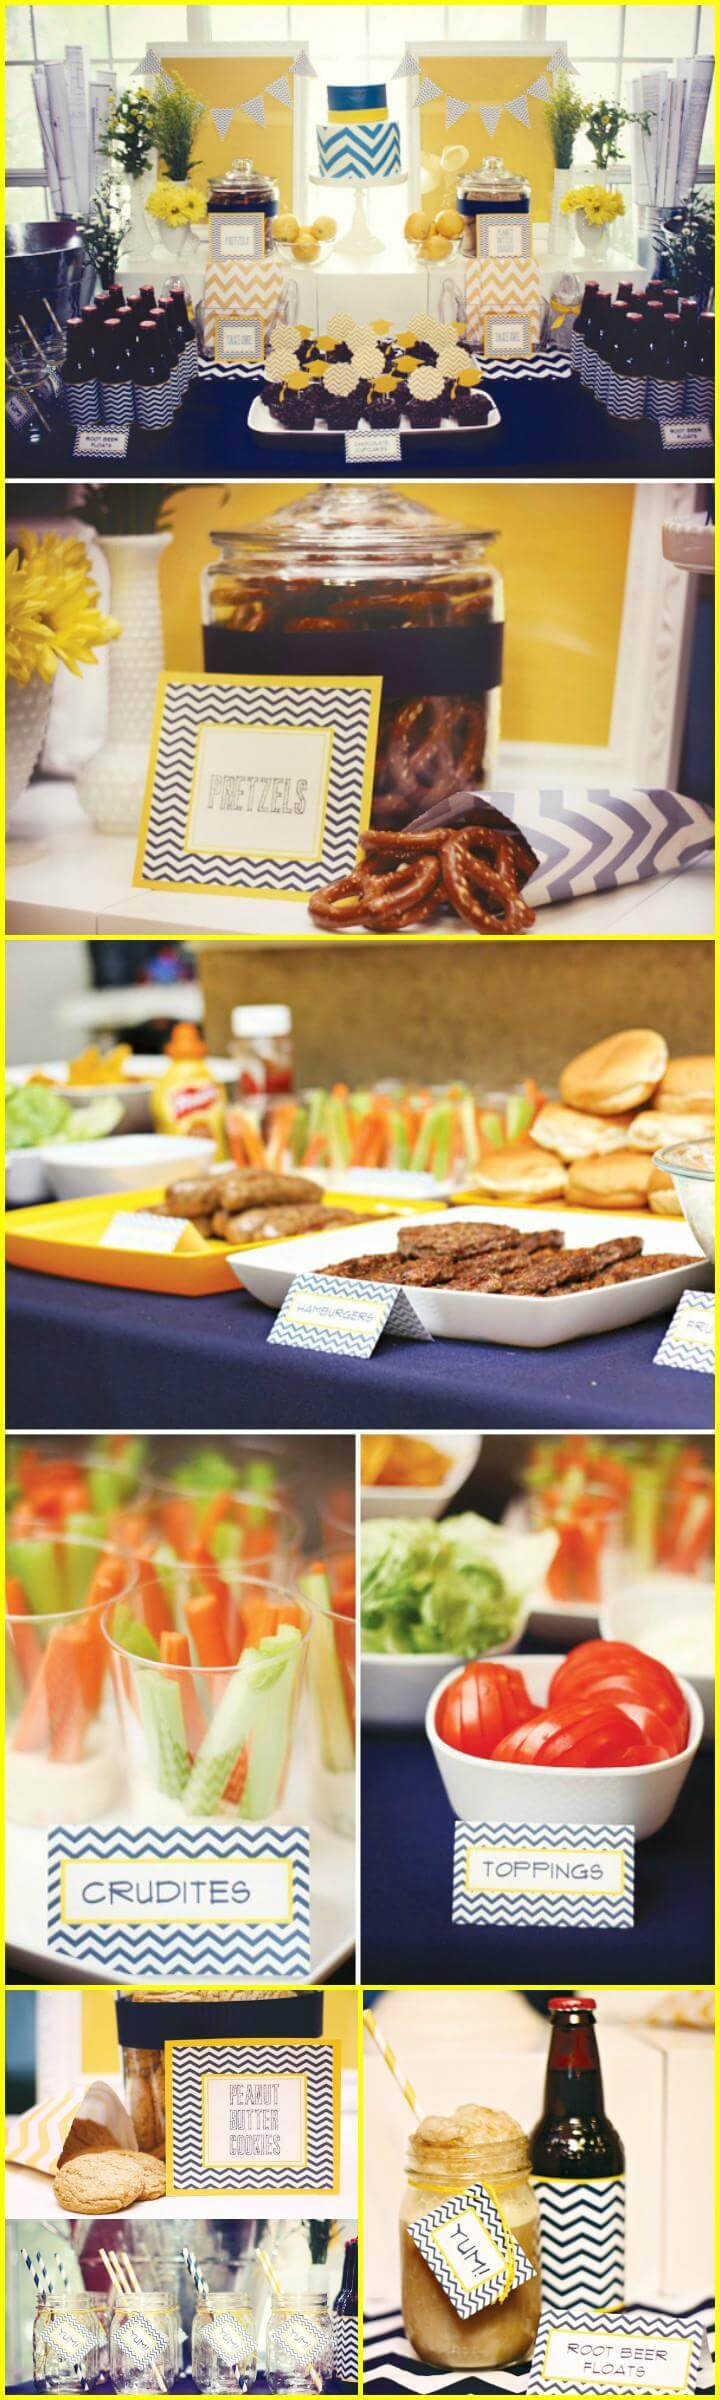 chic navy and yellow graduation party theme